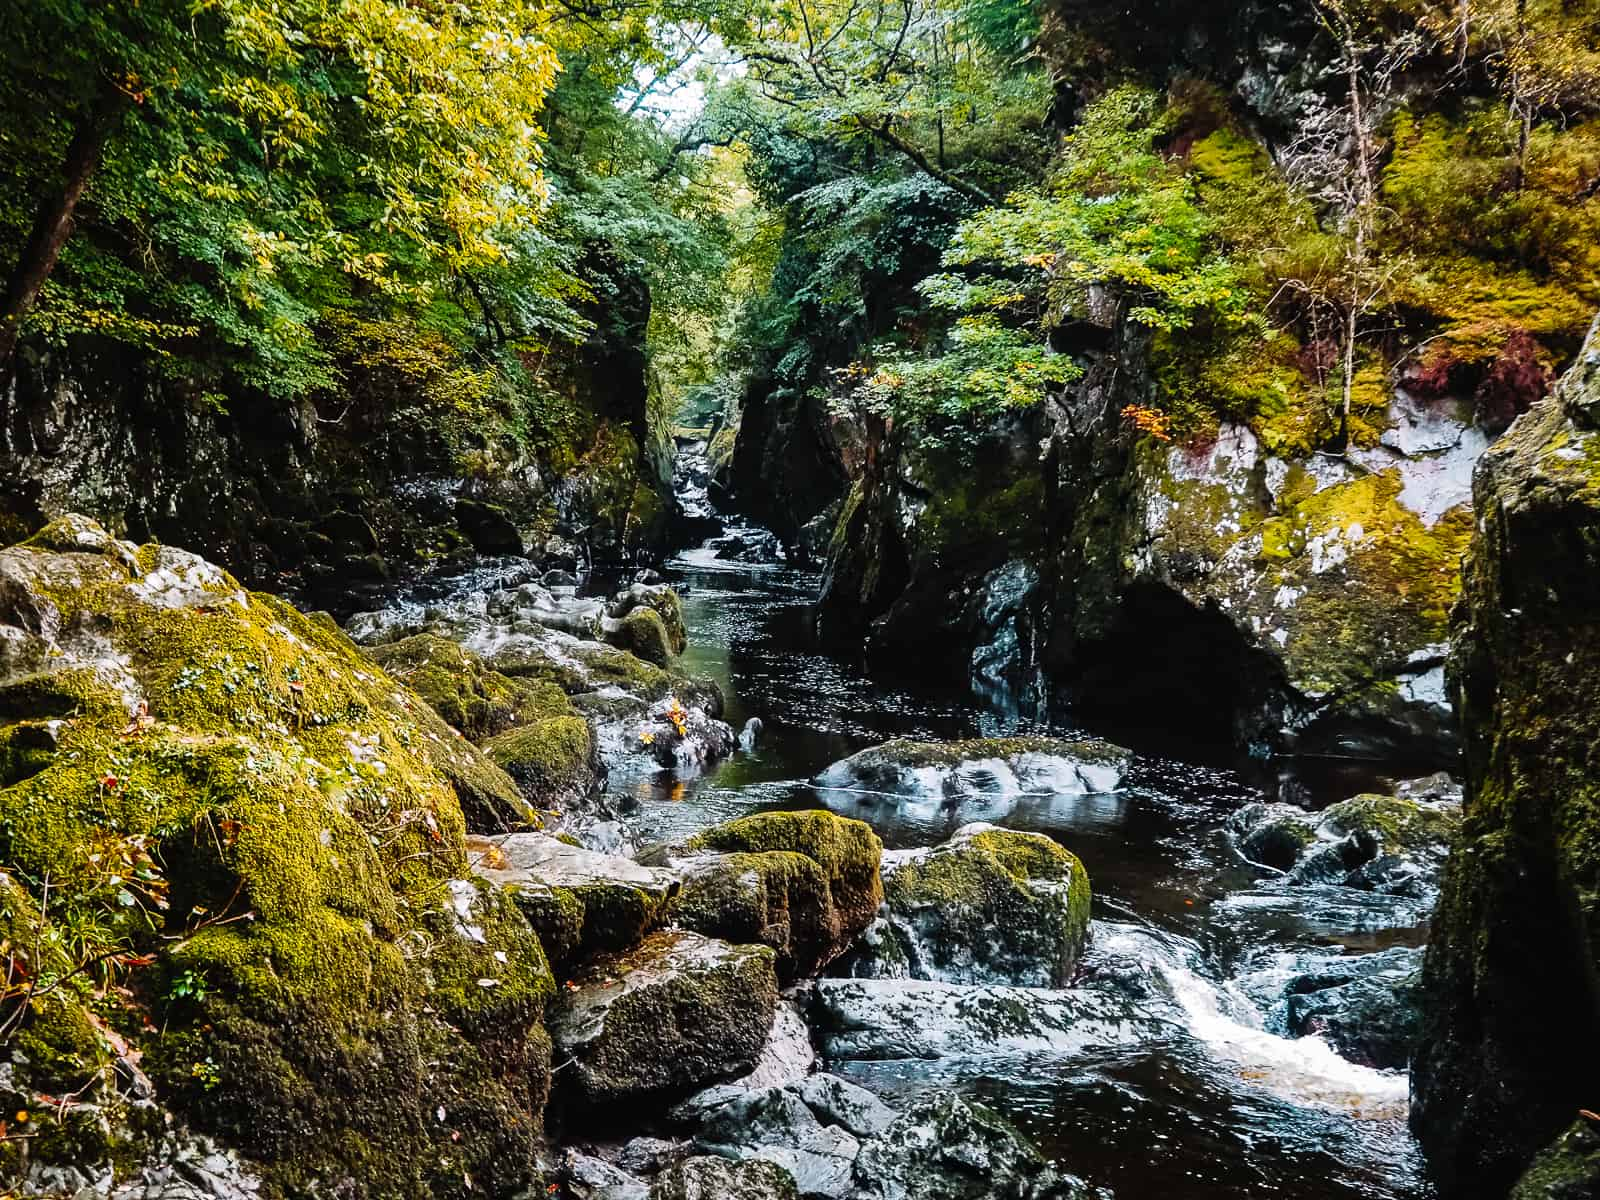 The Fairy Glen Wales Gorge Betws-y-Coed